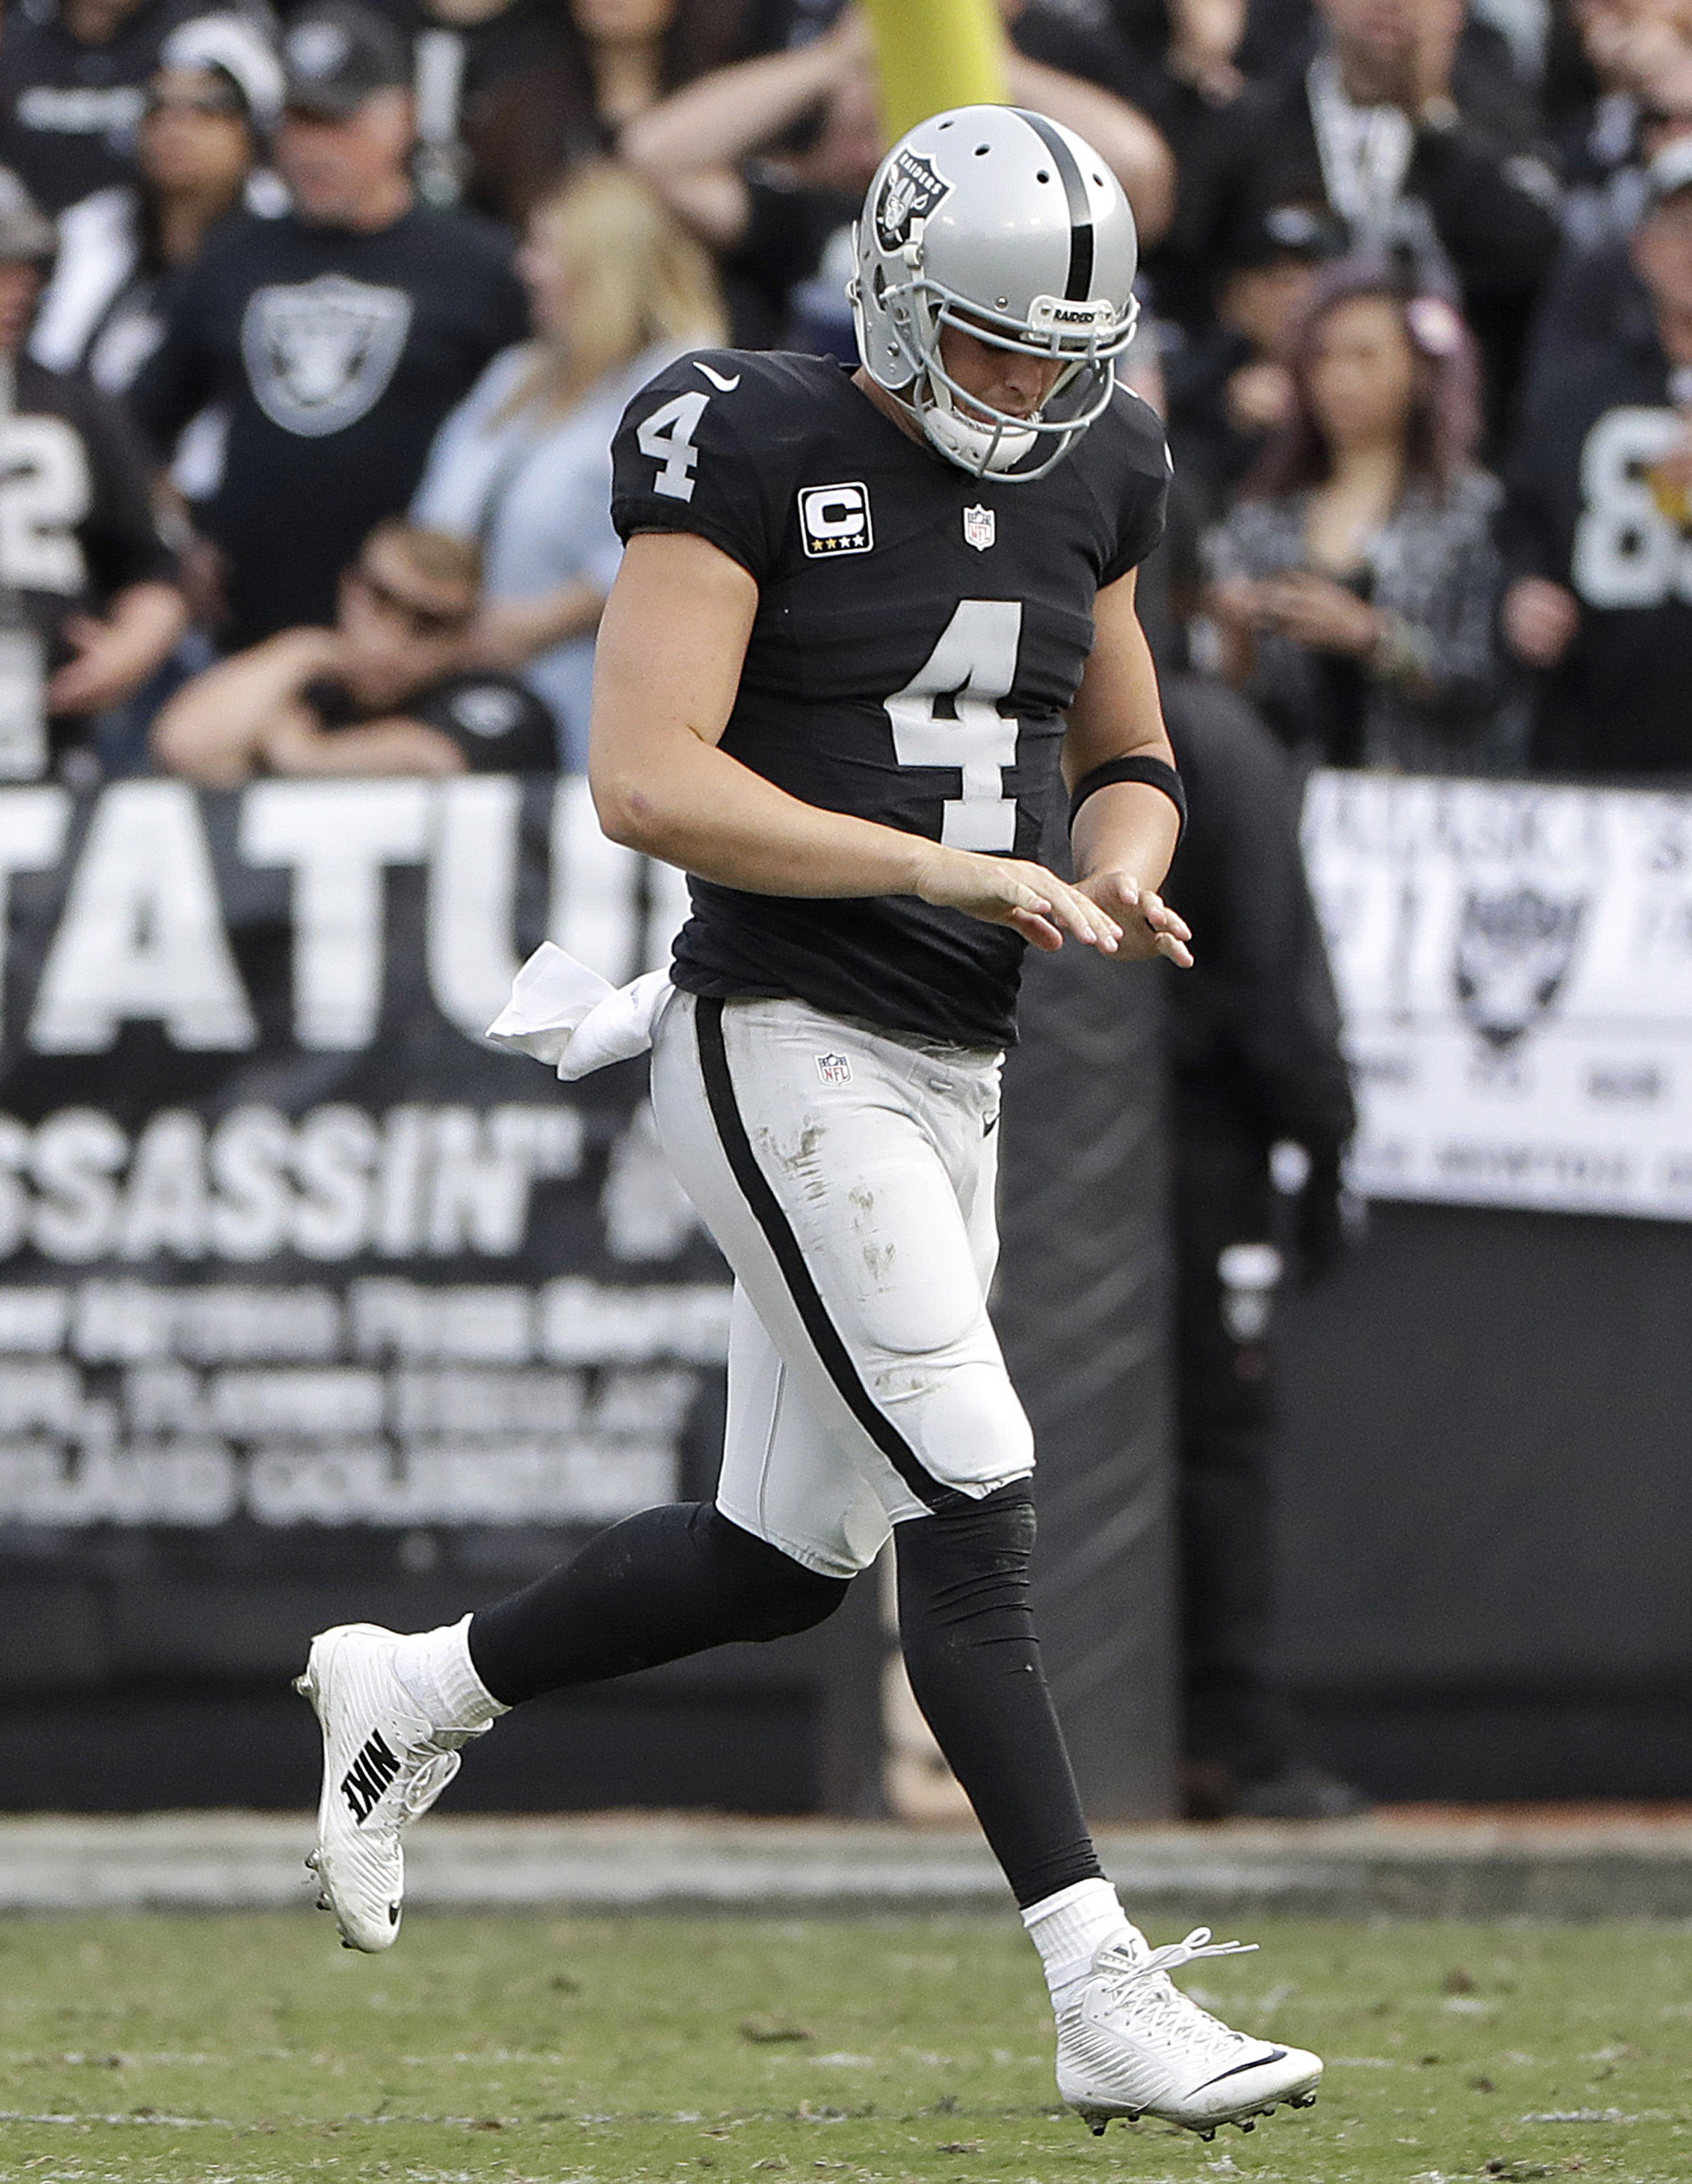 Oakland Raiders quarterback Derek Carr (4) runs off the field after an injury to his hand during the second half of an NFL football game against the Carolina Panthers in Oakland, Calif., Sunday, Nov. 27, 2016. (AP Photo/Marcio Jose Sanchez)